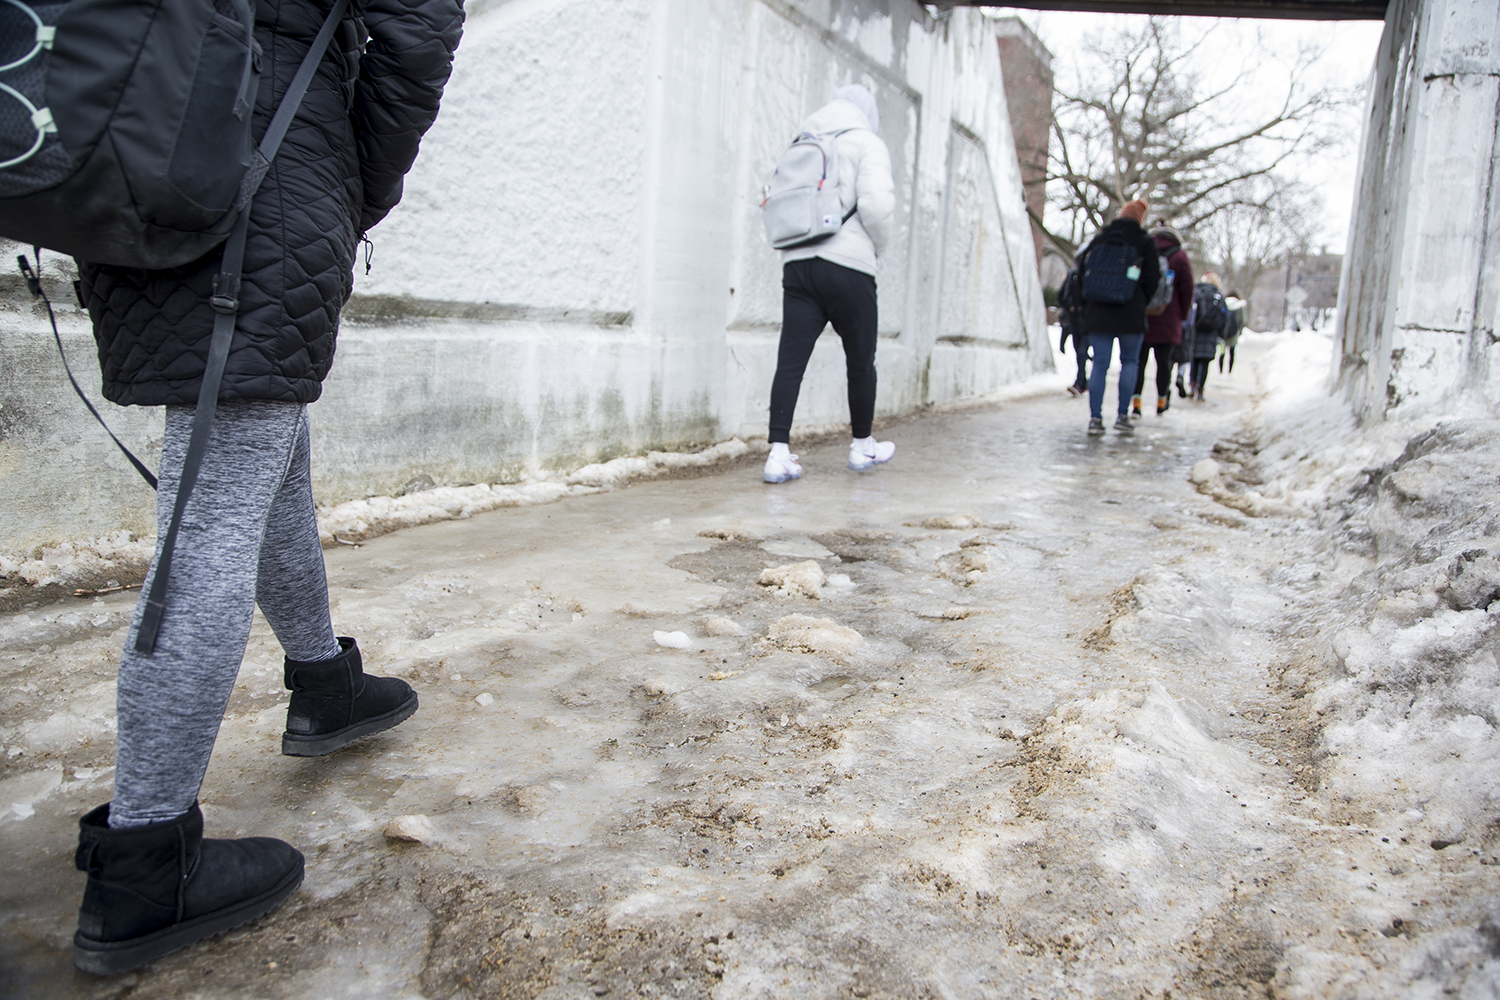 Students walk across a sheet of ice in Iowa City on Monday, February 25, 2019. Ice froze over pavements after the rainy weekend, but Iowa City is running out of salt to clear sidewalks.